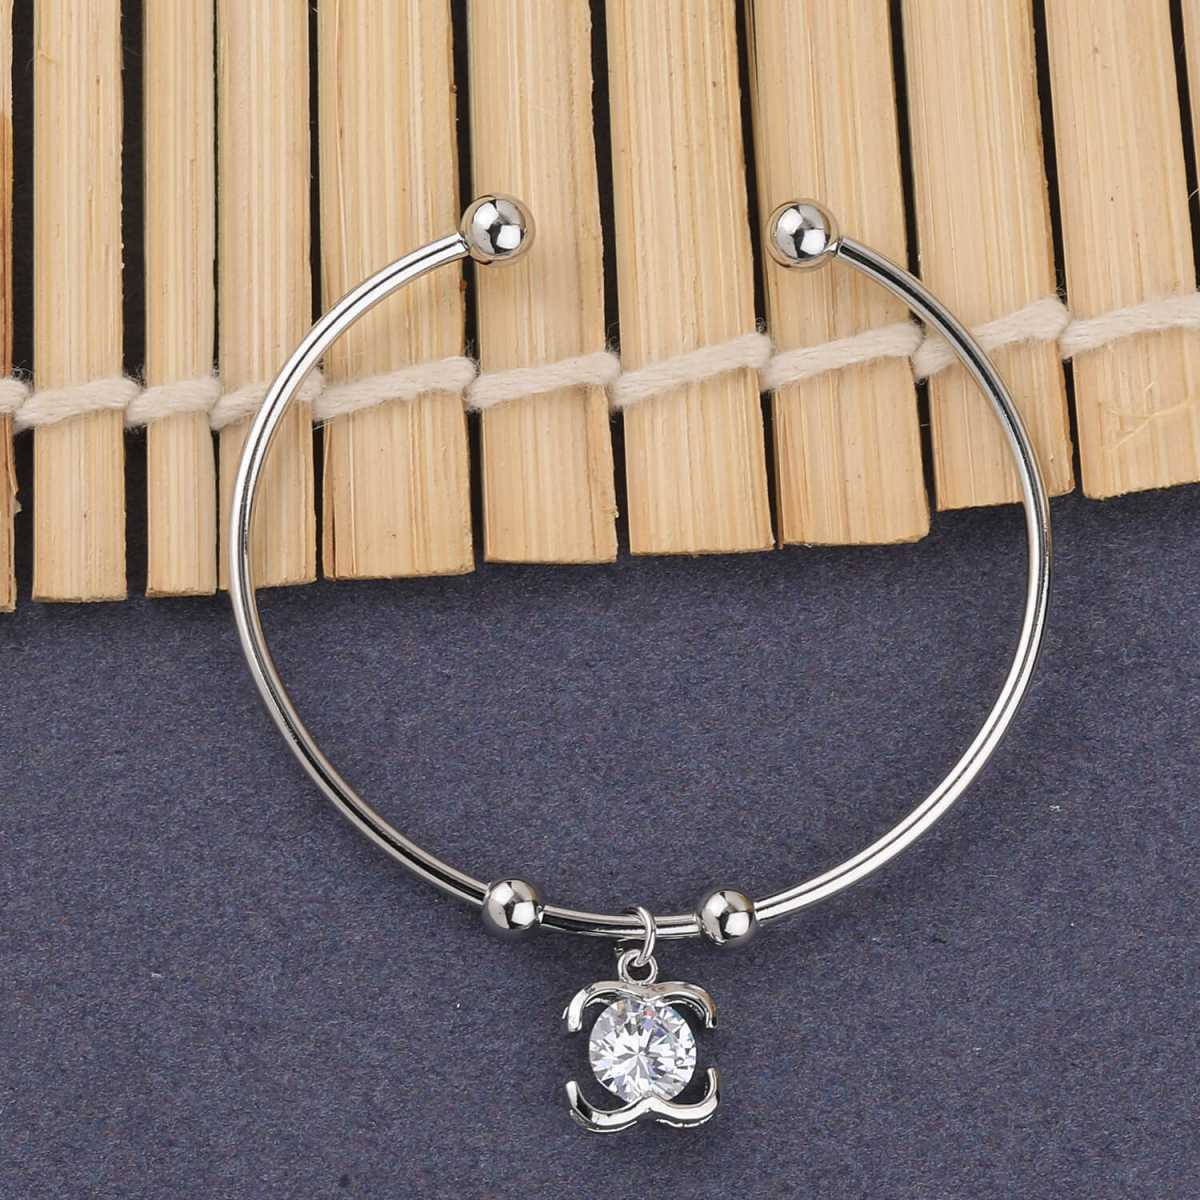 SILVER SHINE Party Wear Fancy Look Adjustable Bracelet With Diamond For Women Girls